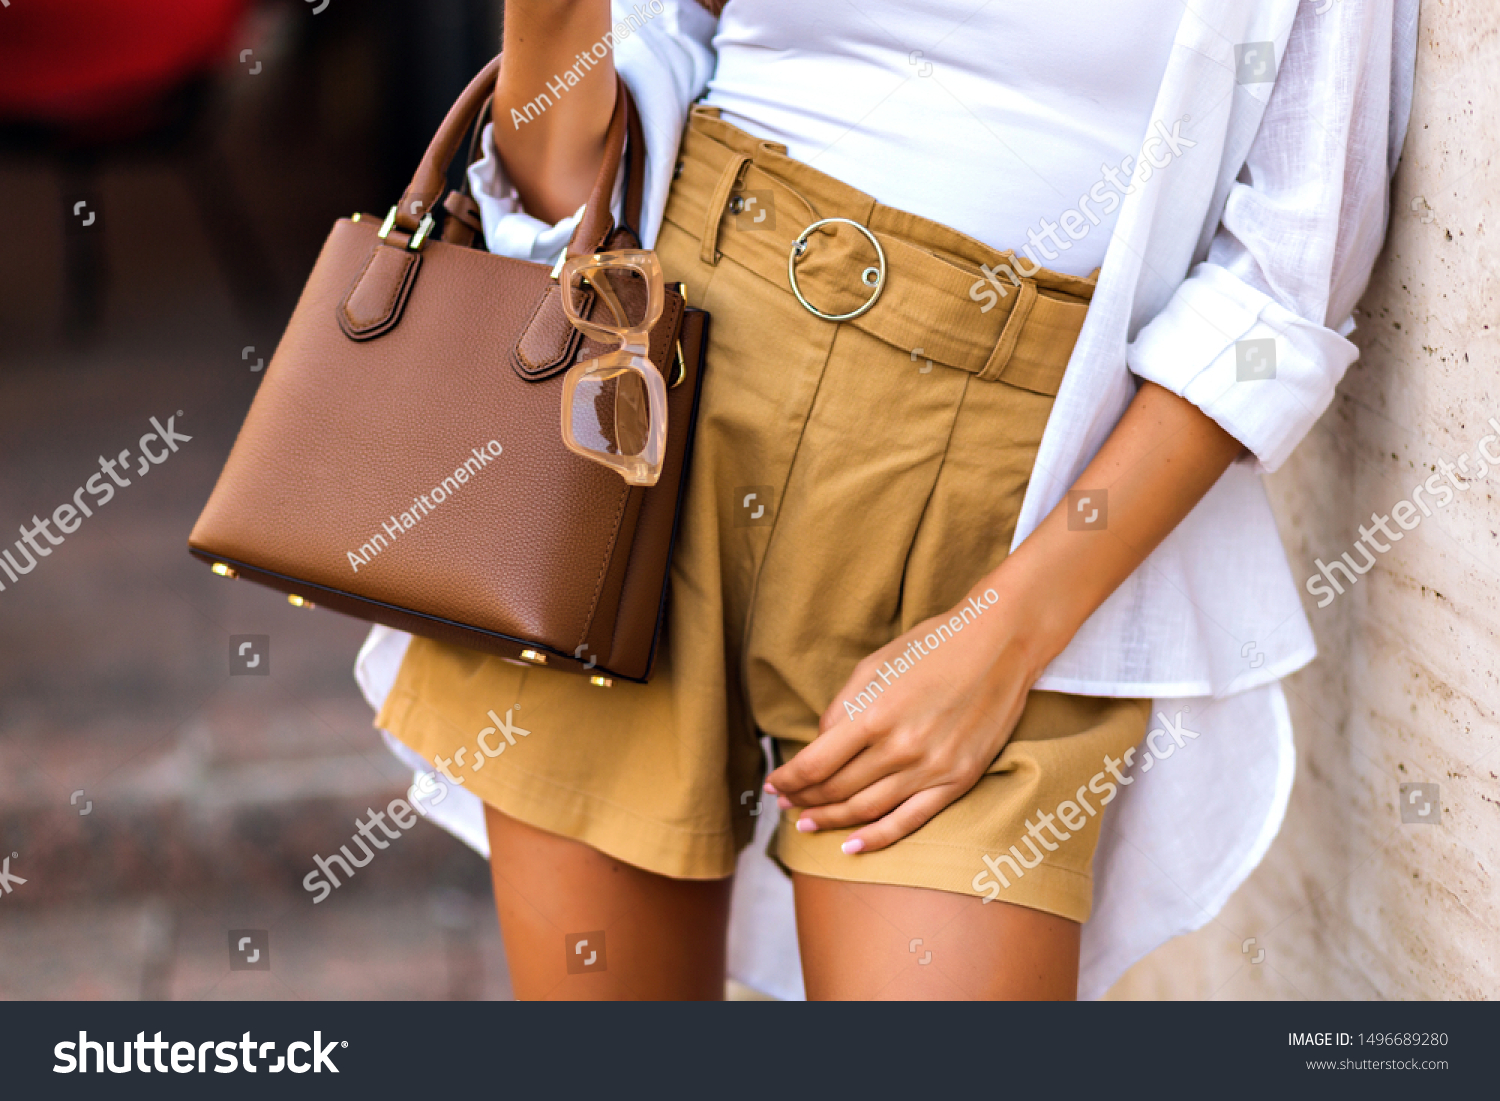 Street style fashion details, tanned woman wearing linen shorts, white shirt, brown leather bag and clear beige sunglasses, modern classic summer chic outfit, warm colors.